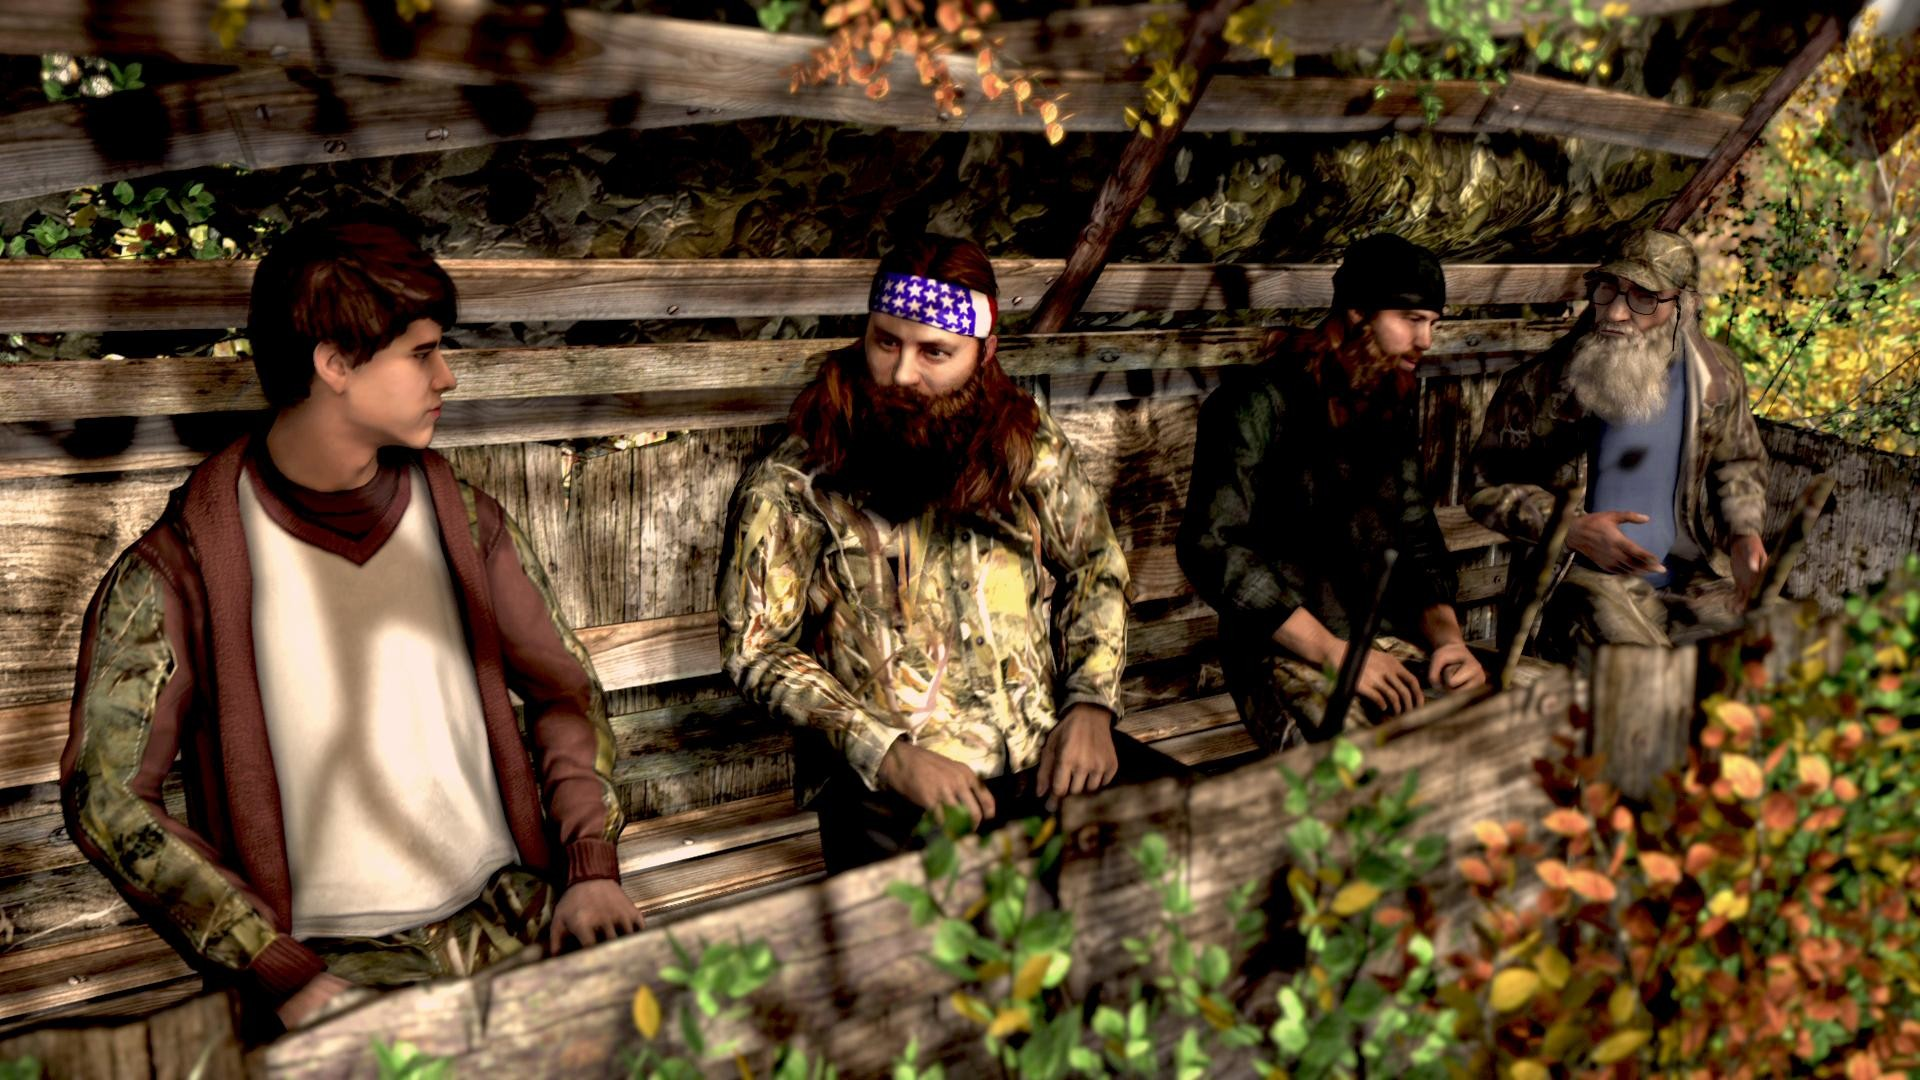 Res: 1920x1080, Duck Dynasty Wallpapers 20 - 1920 X 1080